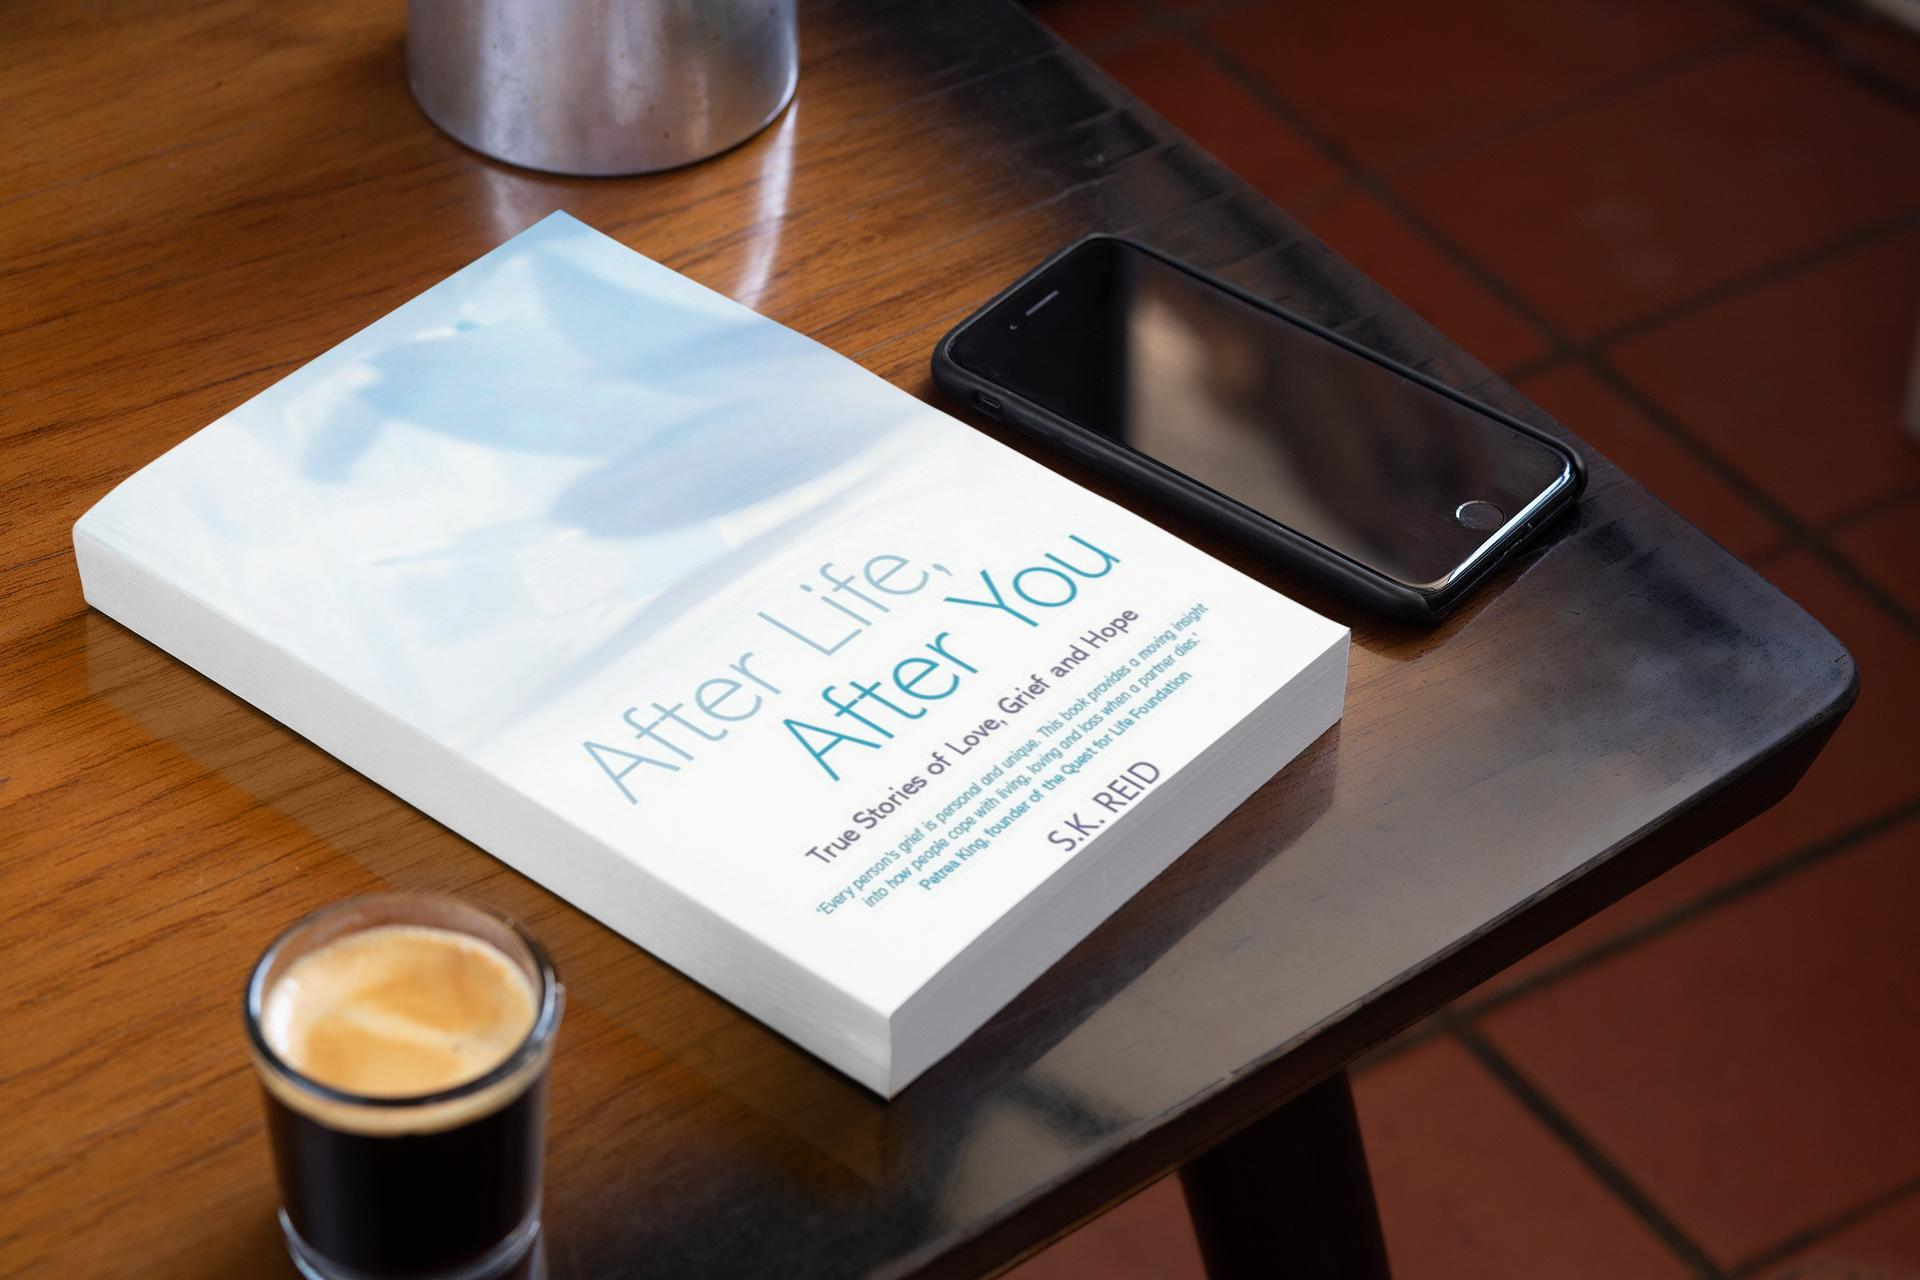 Copy of book on coffee table